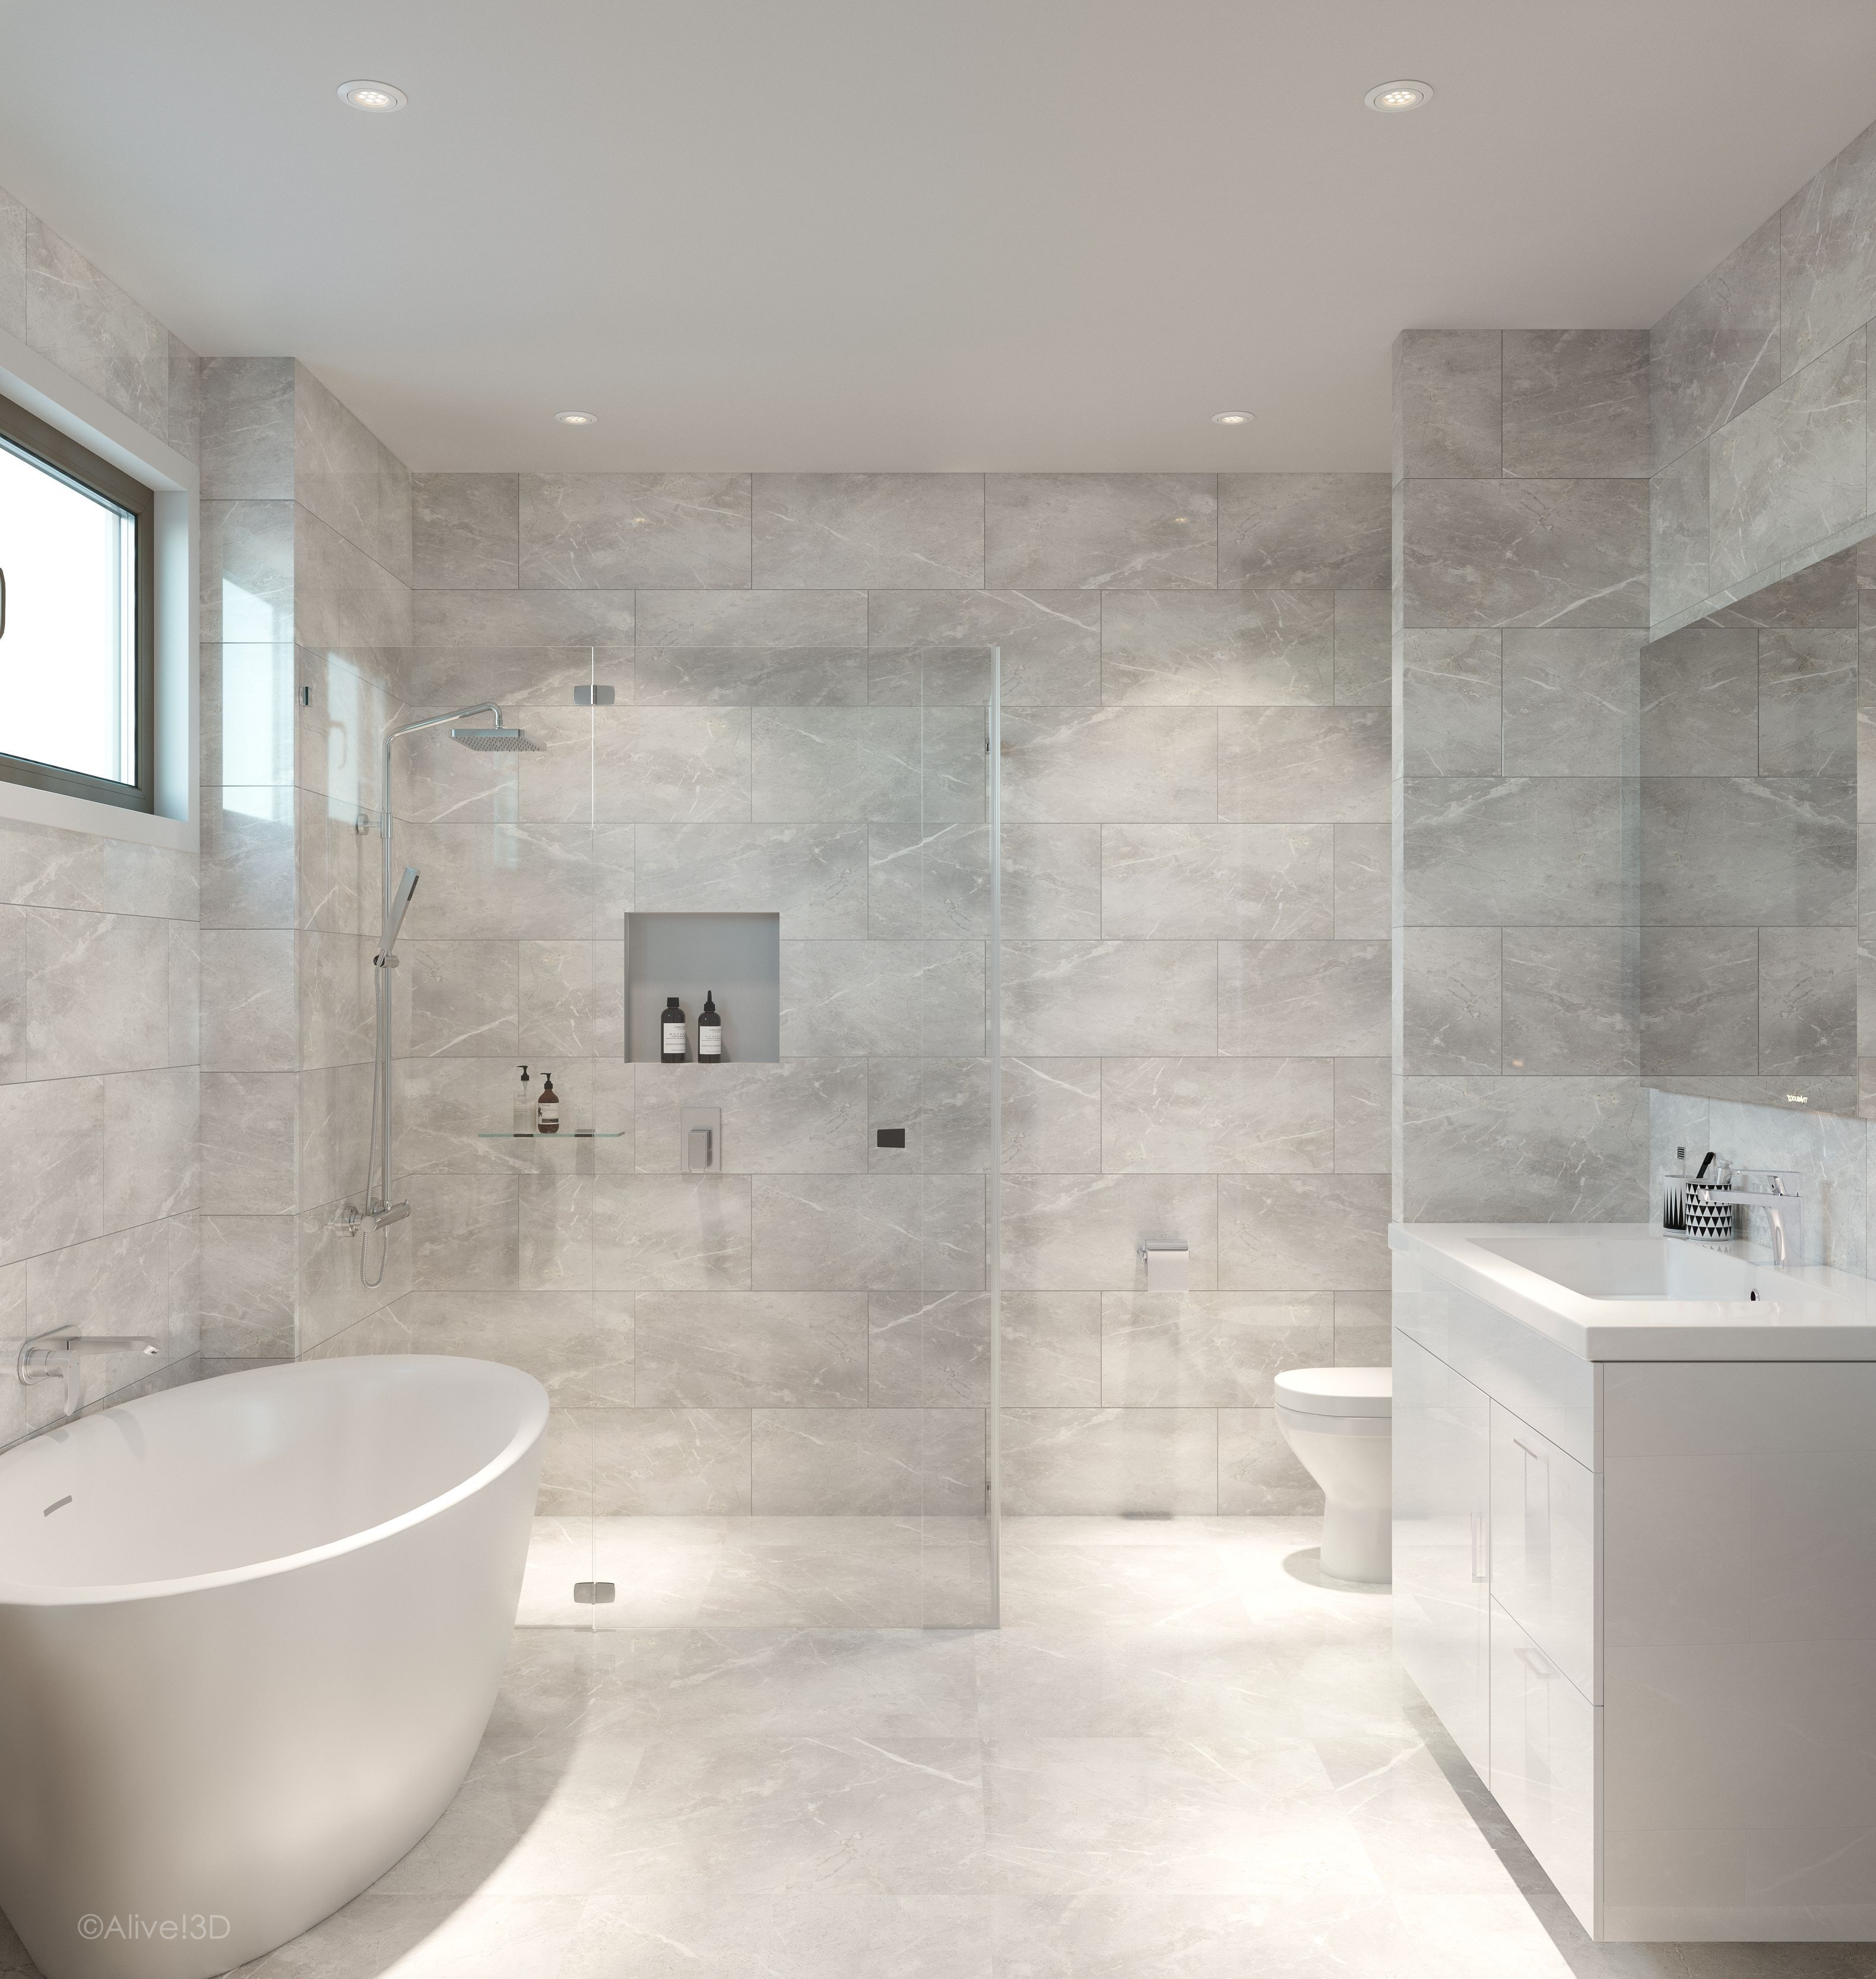 Luxury Ensuite Luxuryensuitedesigns Bathroom Design Decor Bathroom Design Inspiration Bathroom Interior Design